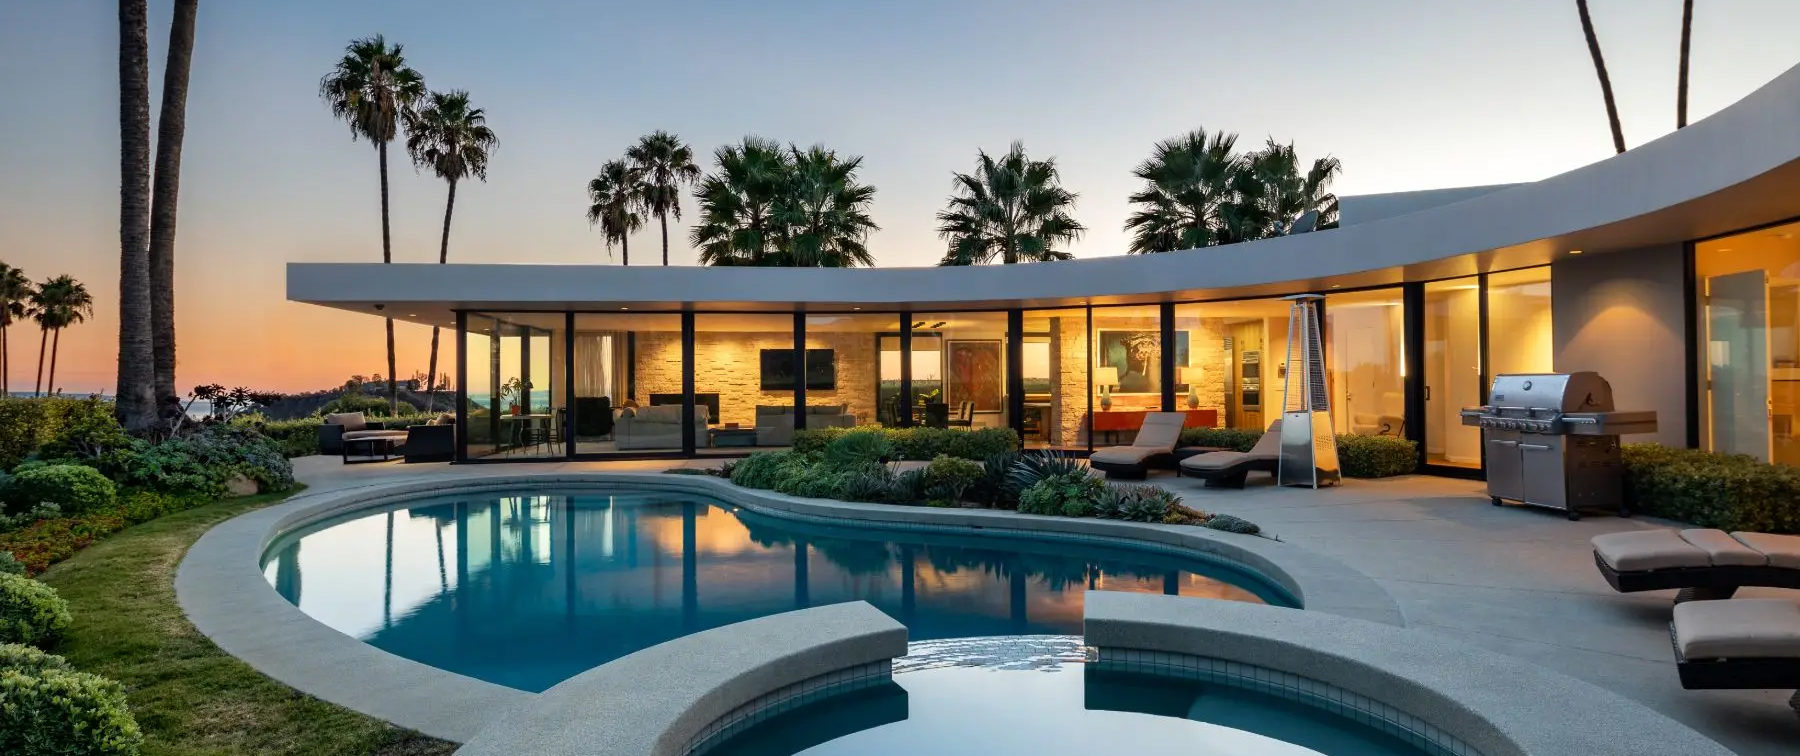 Elon Musk's California house has just gone up for sale